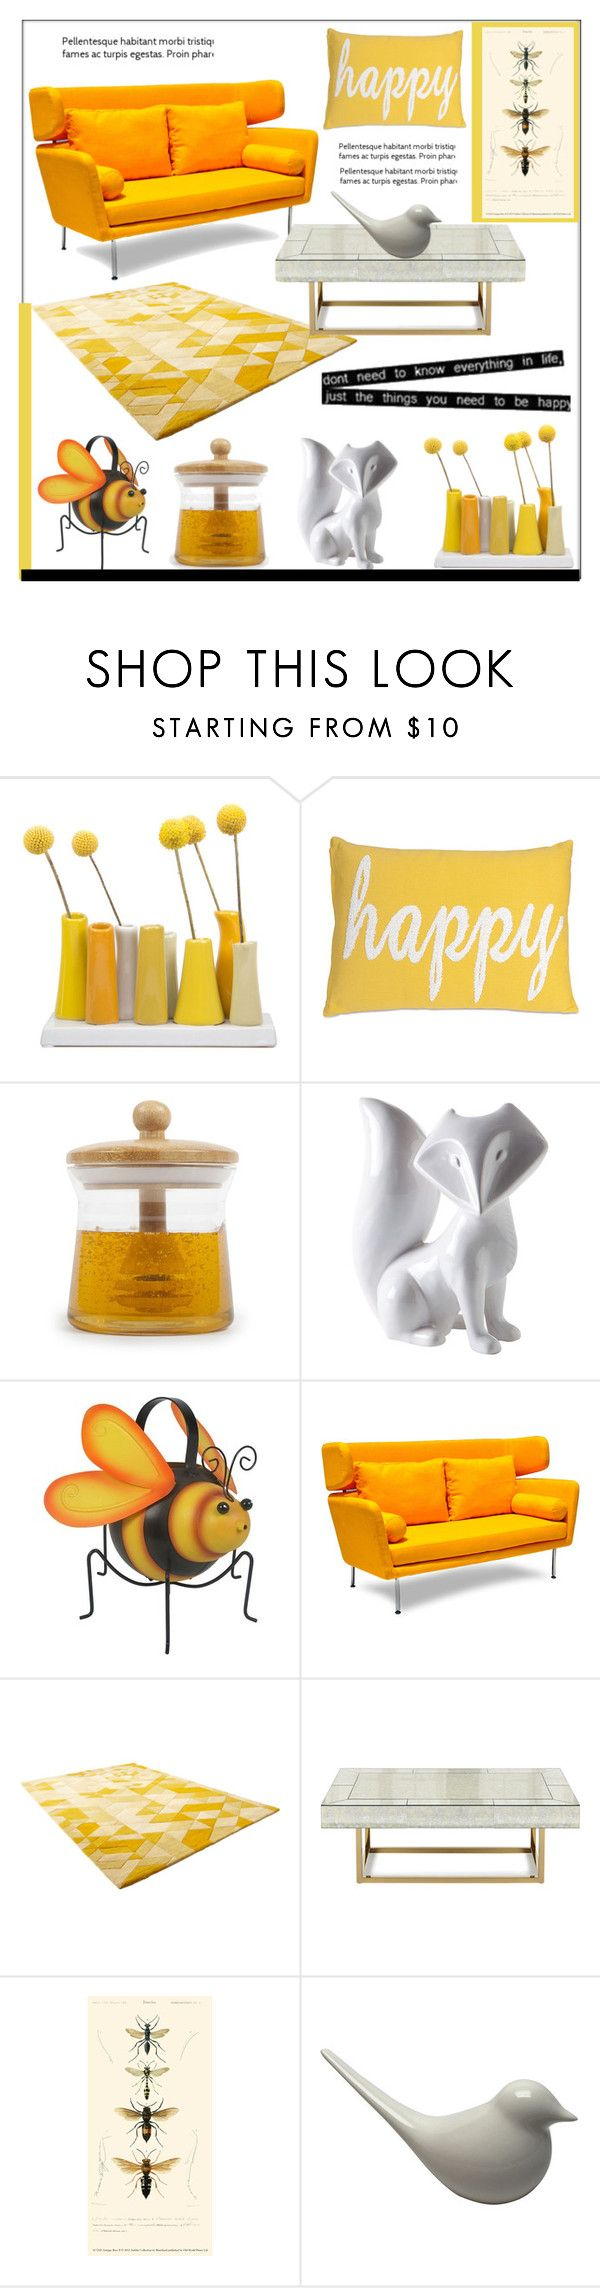 """""""Happiness"""" by pat912 ❤ liked on Polyvore featuring interior, interiors, interior design, home, home decor, interior decorating, Dot & Bo, Cyan Design, Jonathan Adler and Home"""